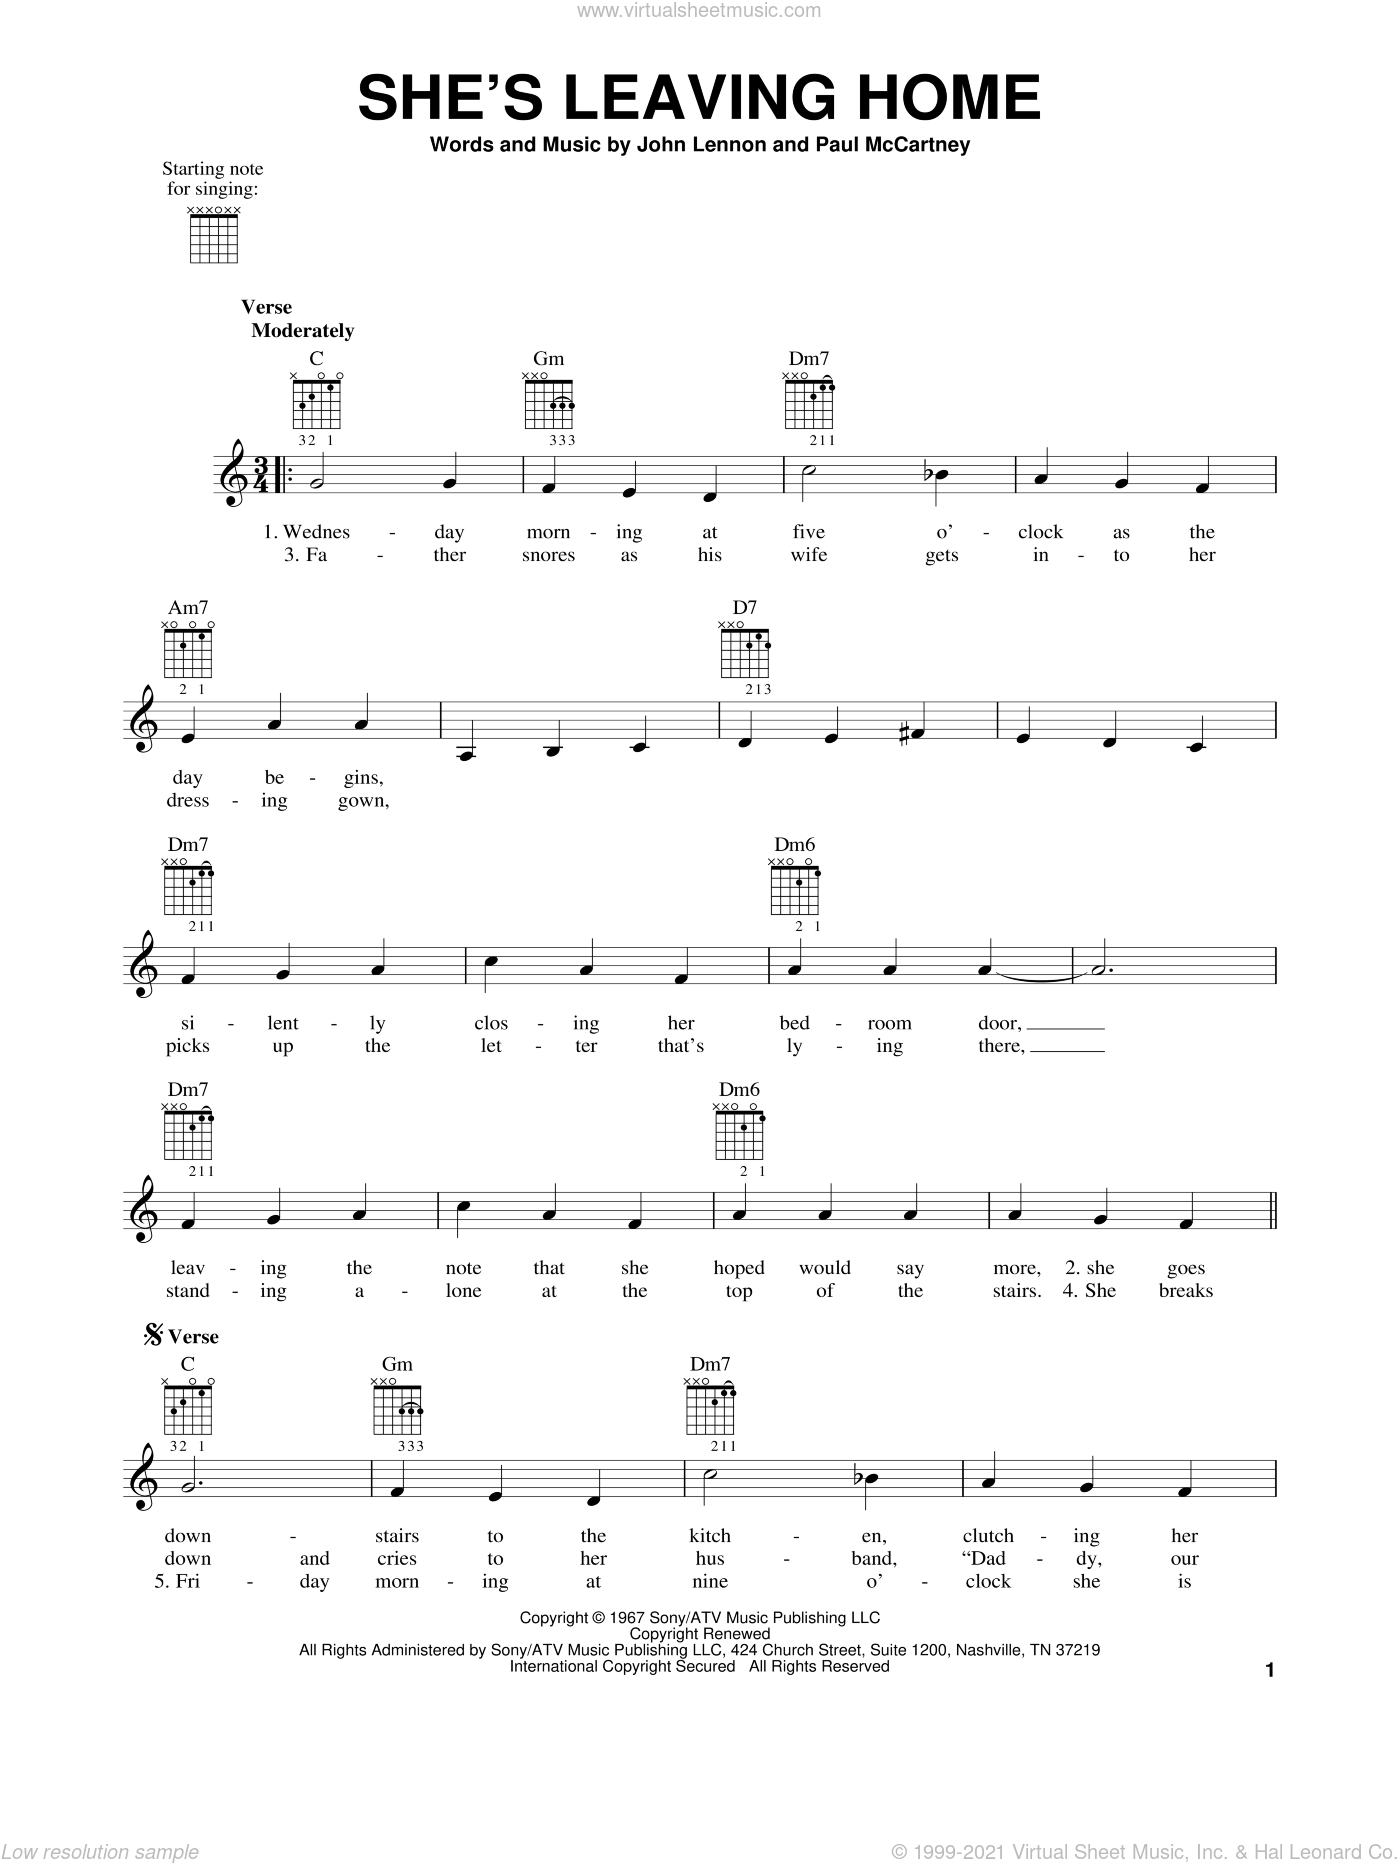 She's Leaving Home sheet music for guitar solo (chords) by The Beatles, John Lennon and Paul McCartney, easy guitar (chords). Score Image Preview.